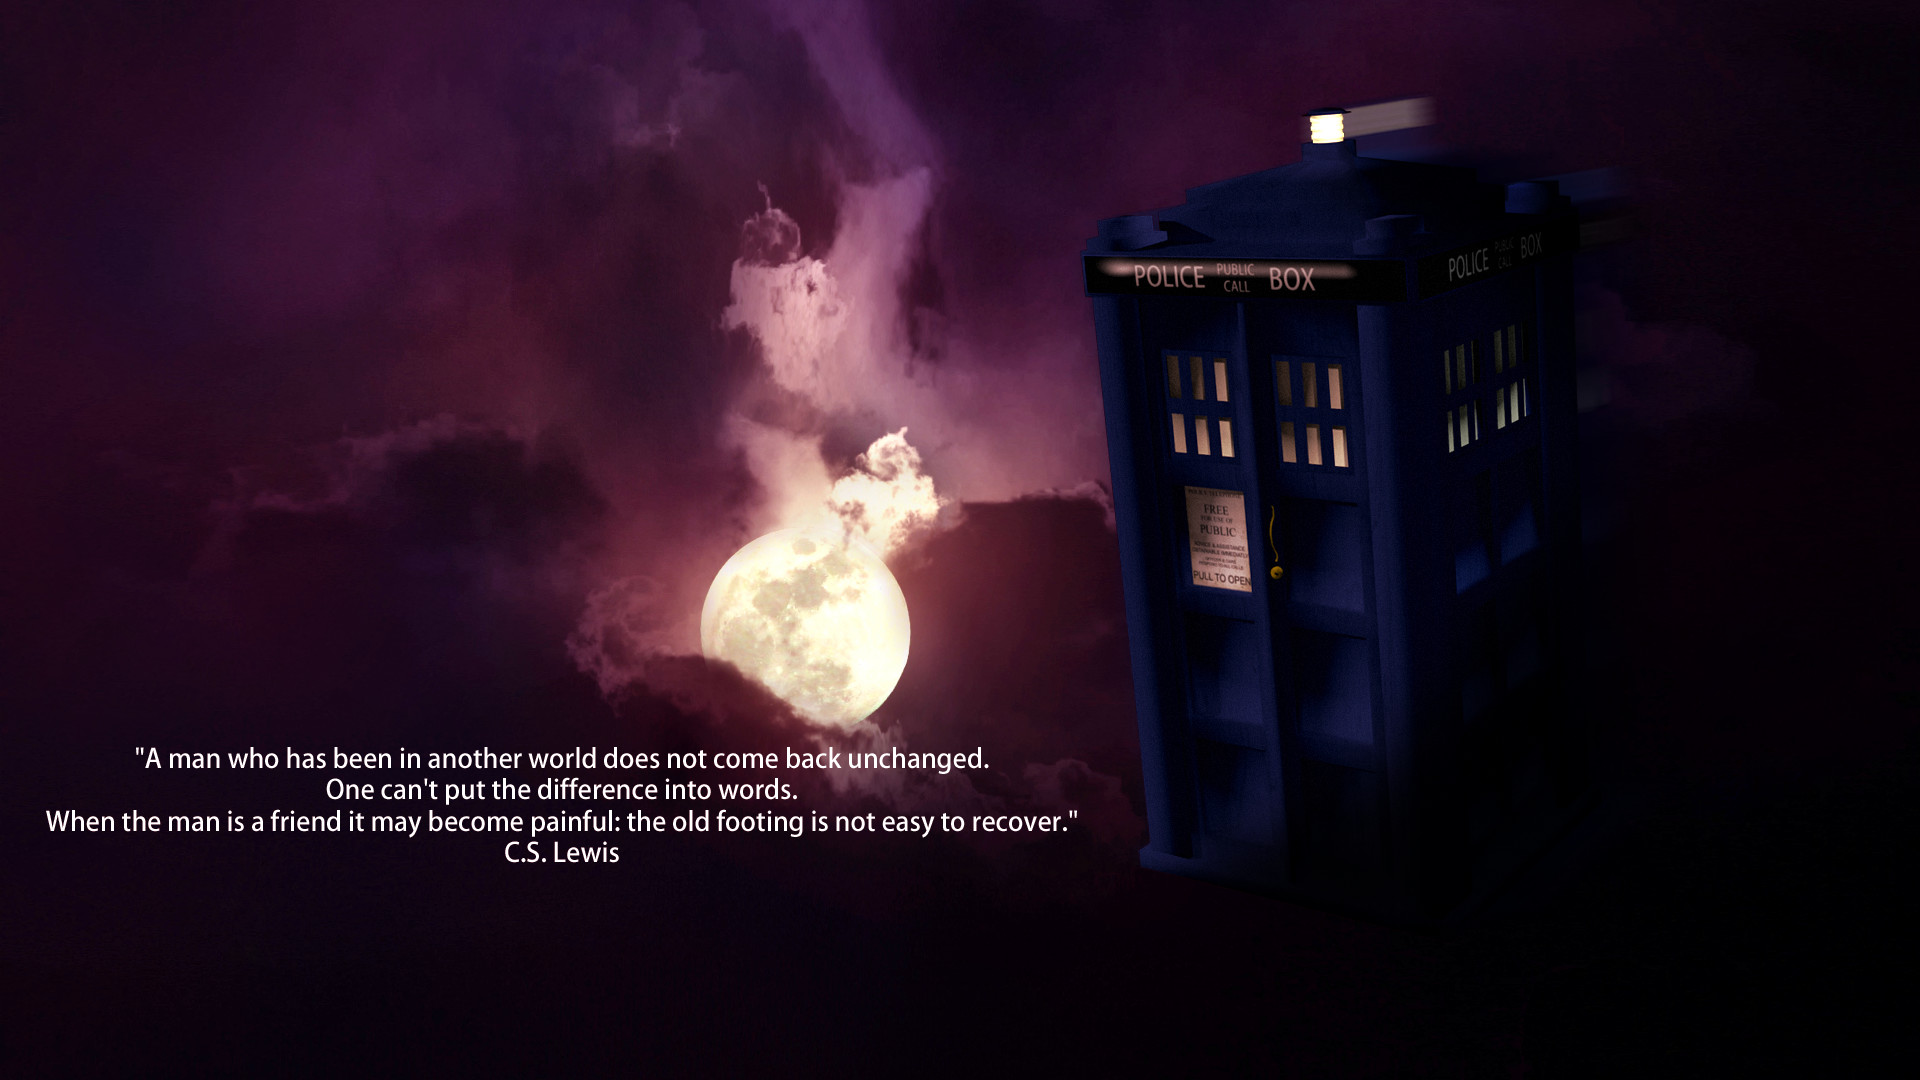 Res: 1920x1080, doctor wallpaper policeman evil night sky tardis